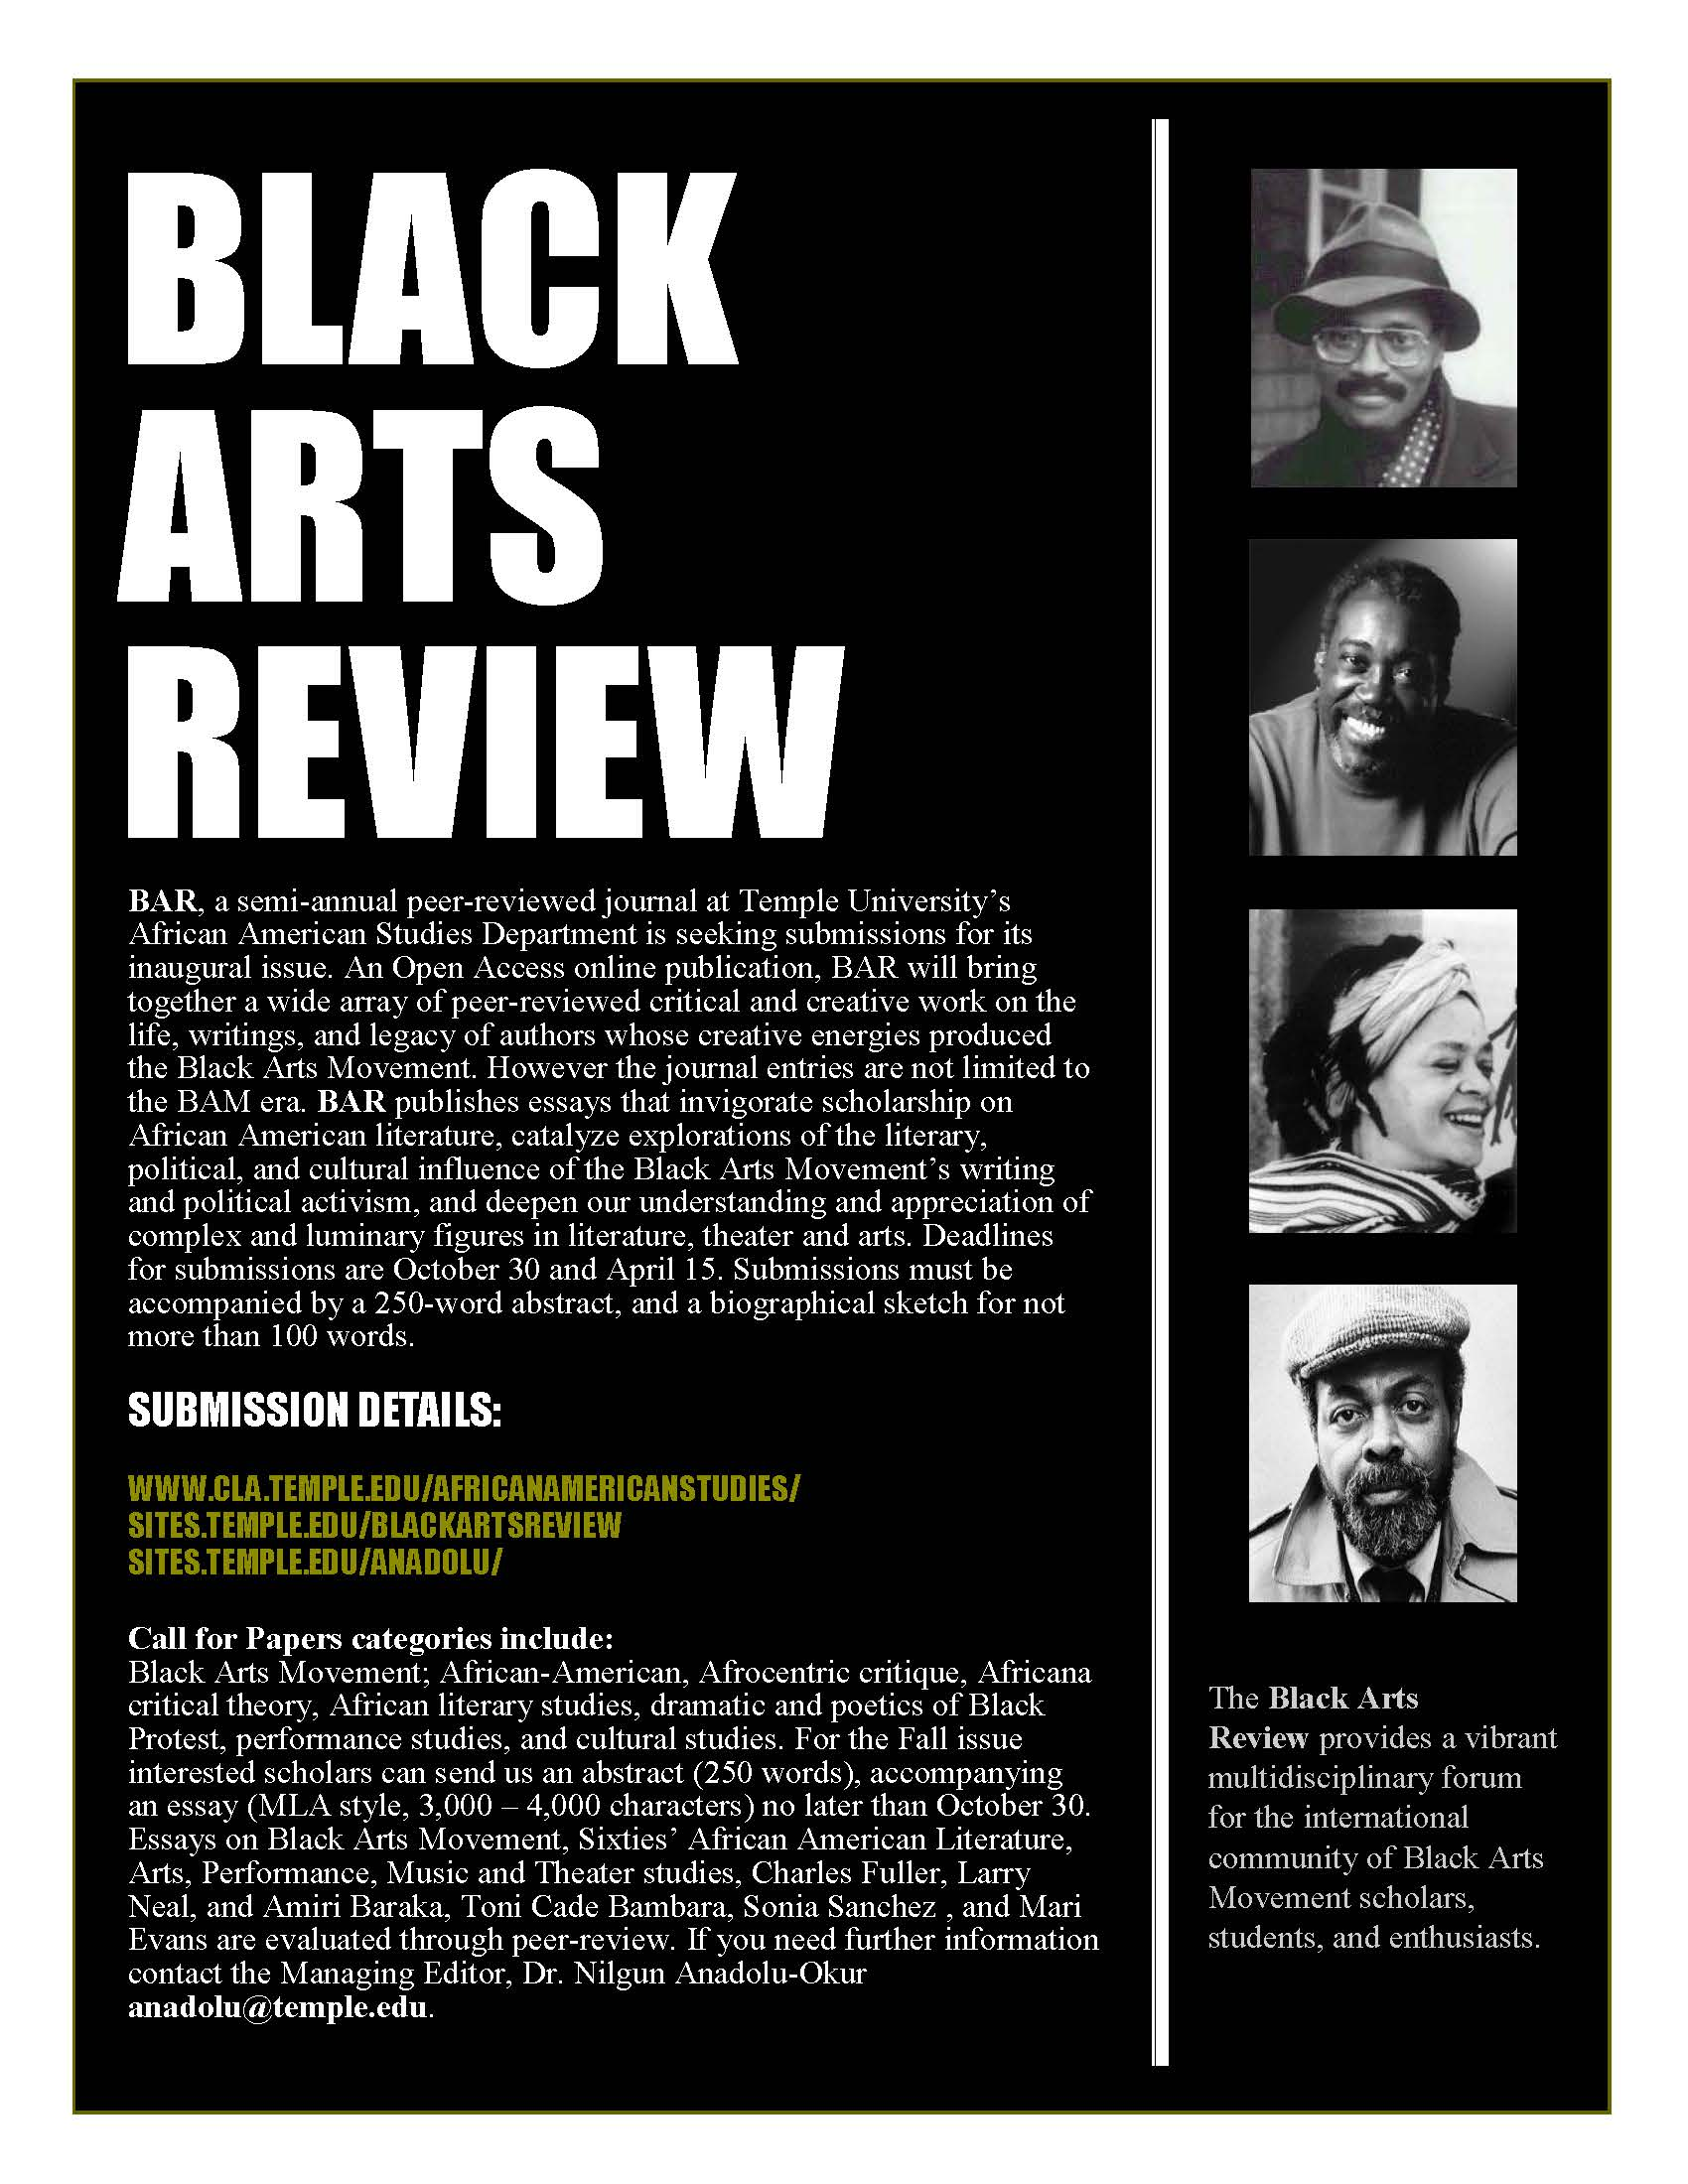 Black arts review